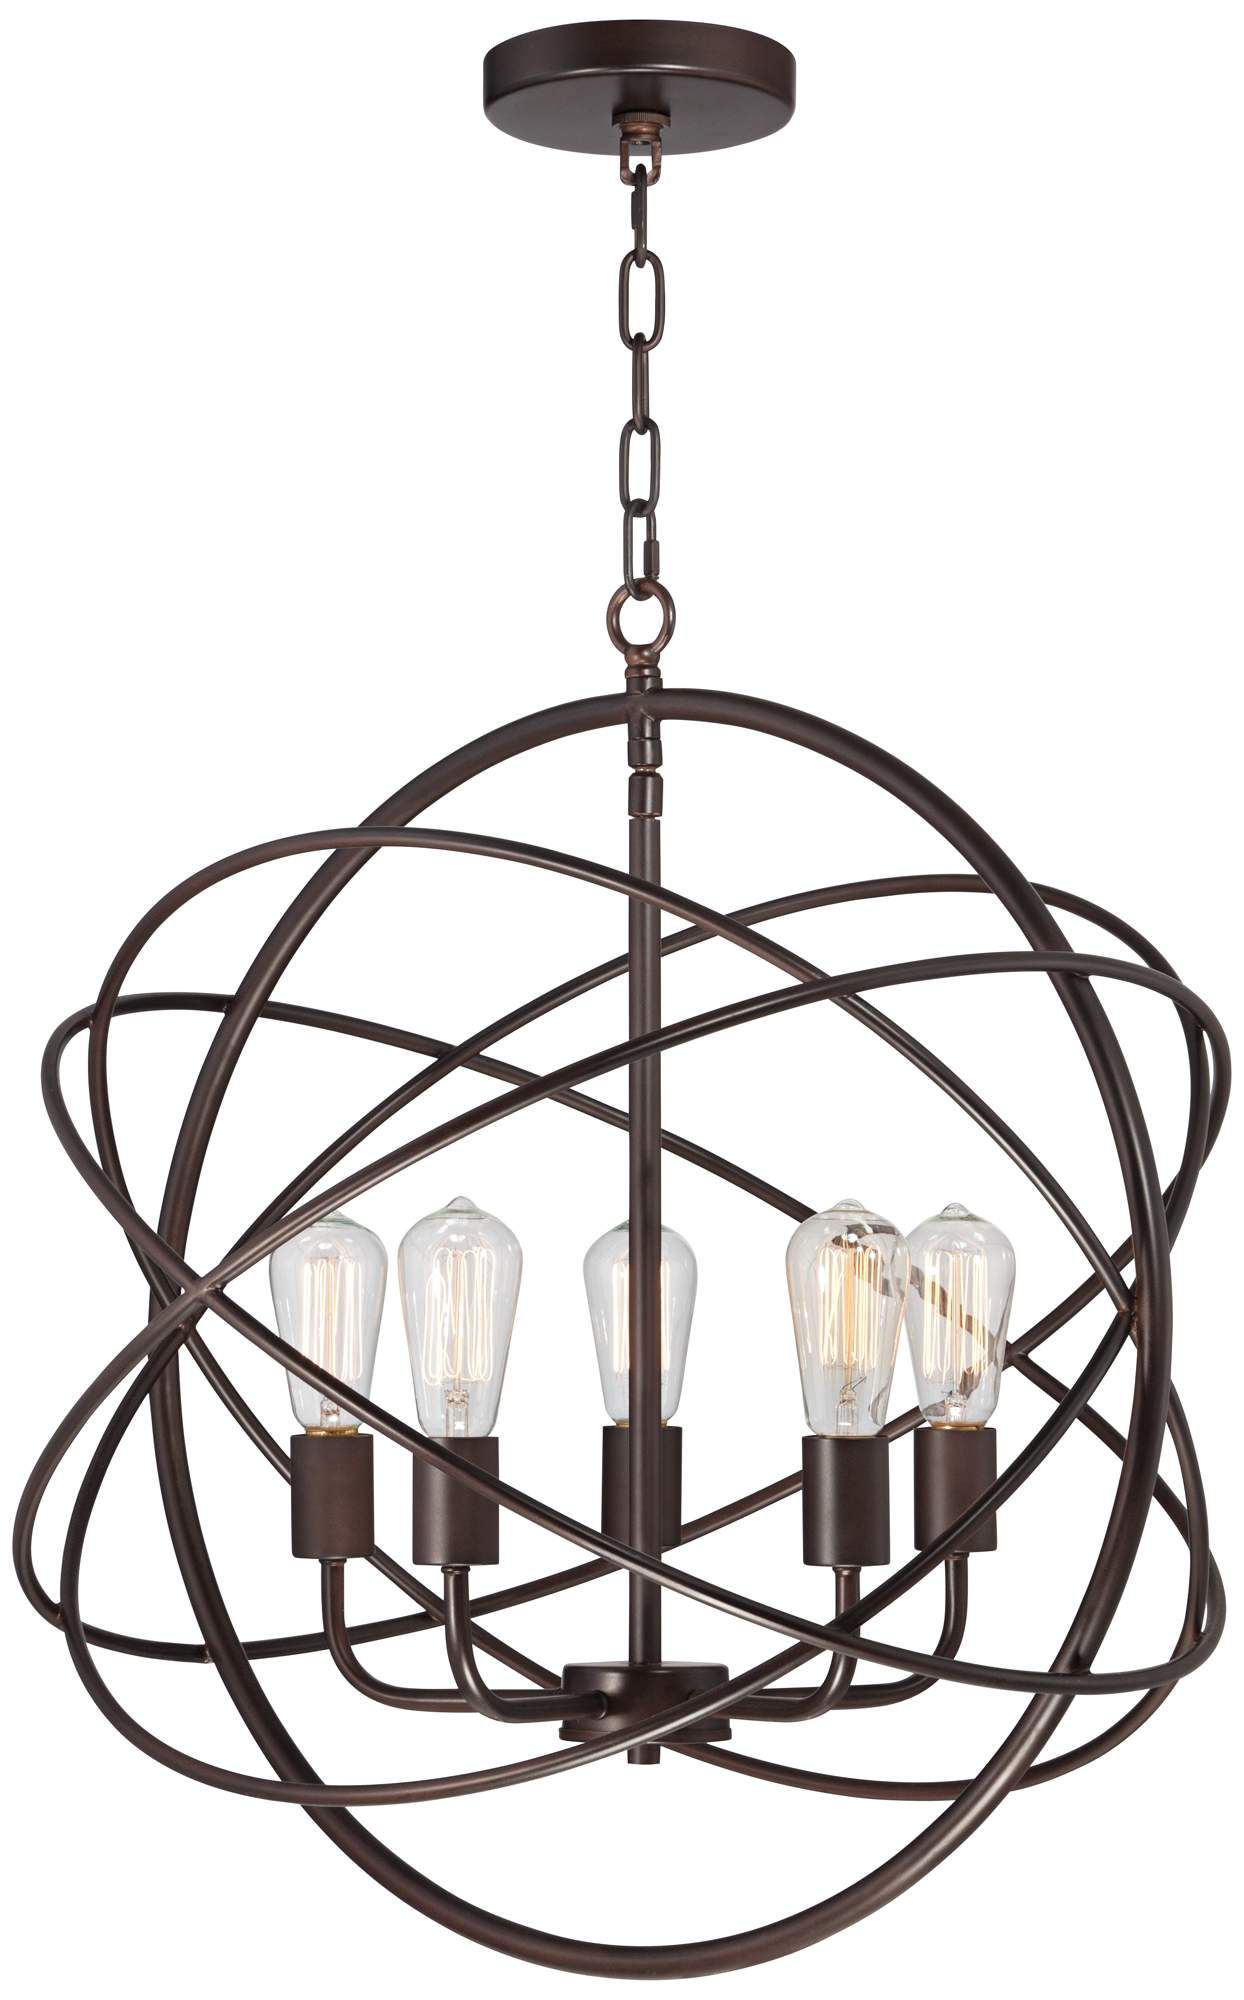 "Ellery 24 3/4"" Wide 5 Light Bronze Sphere Foyer Pendant In Throughout Kierra 4 Light Unique / Statement Chandeliers (Gallery 9 of 30)"